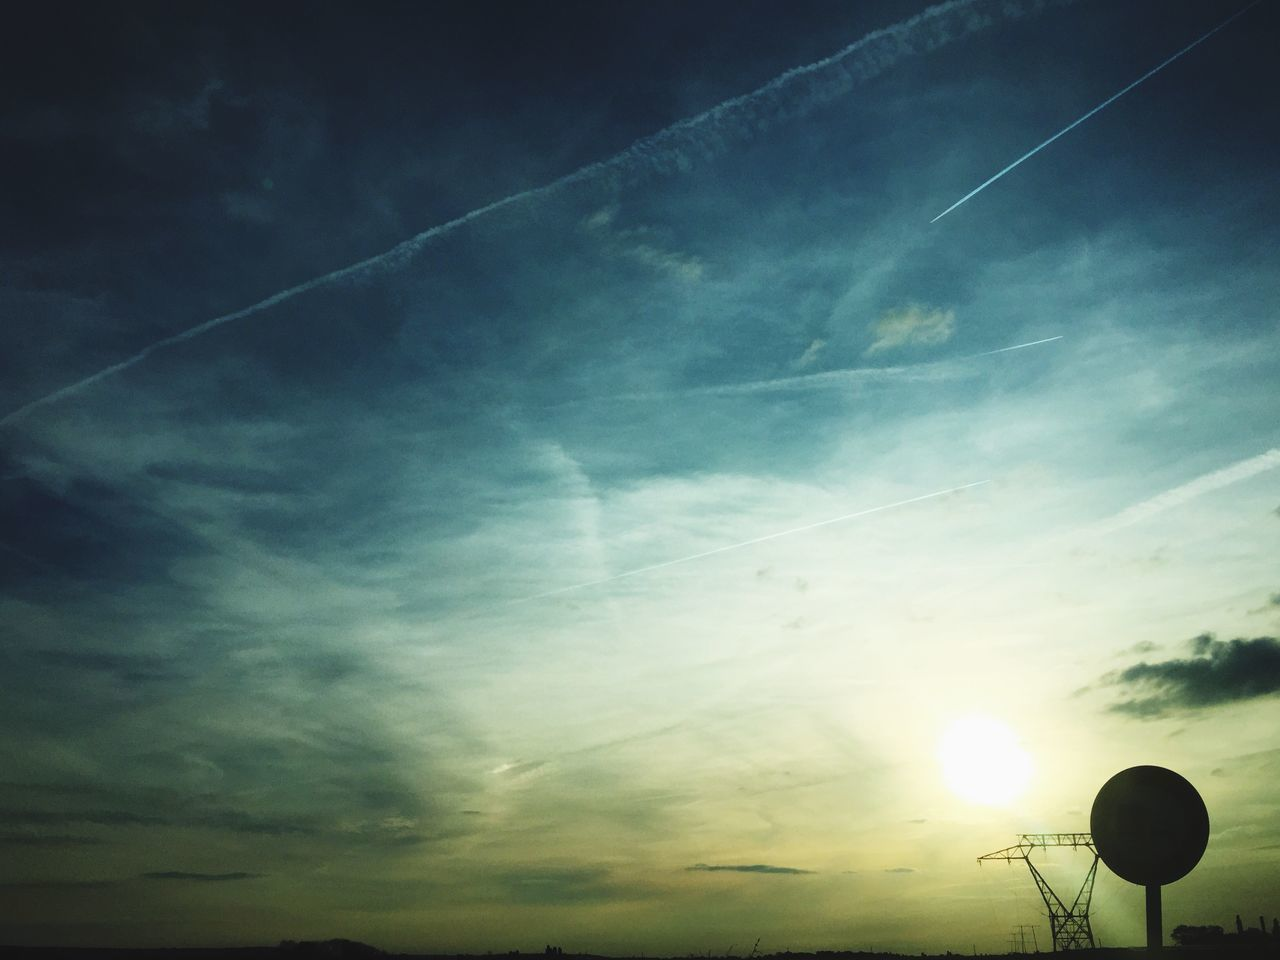 sunset, beauty in nature, low angle view, nature, sky, sunbeam, tranquility, tranquil scene, silhouette, sun, scenics, no people, outdoors, cloud - sky, contrail, vapor trail, day, astronomy